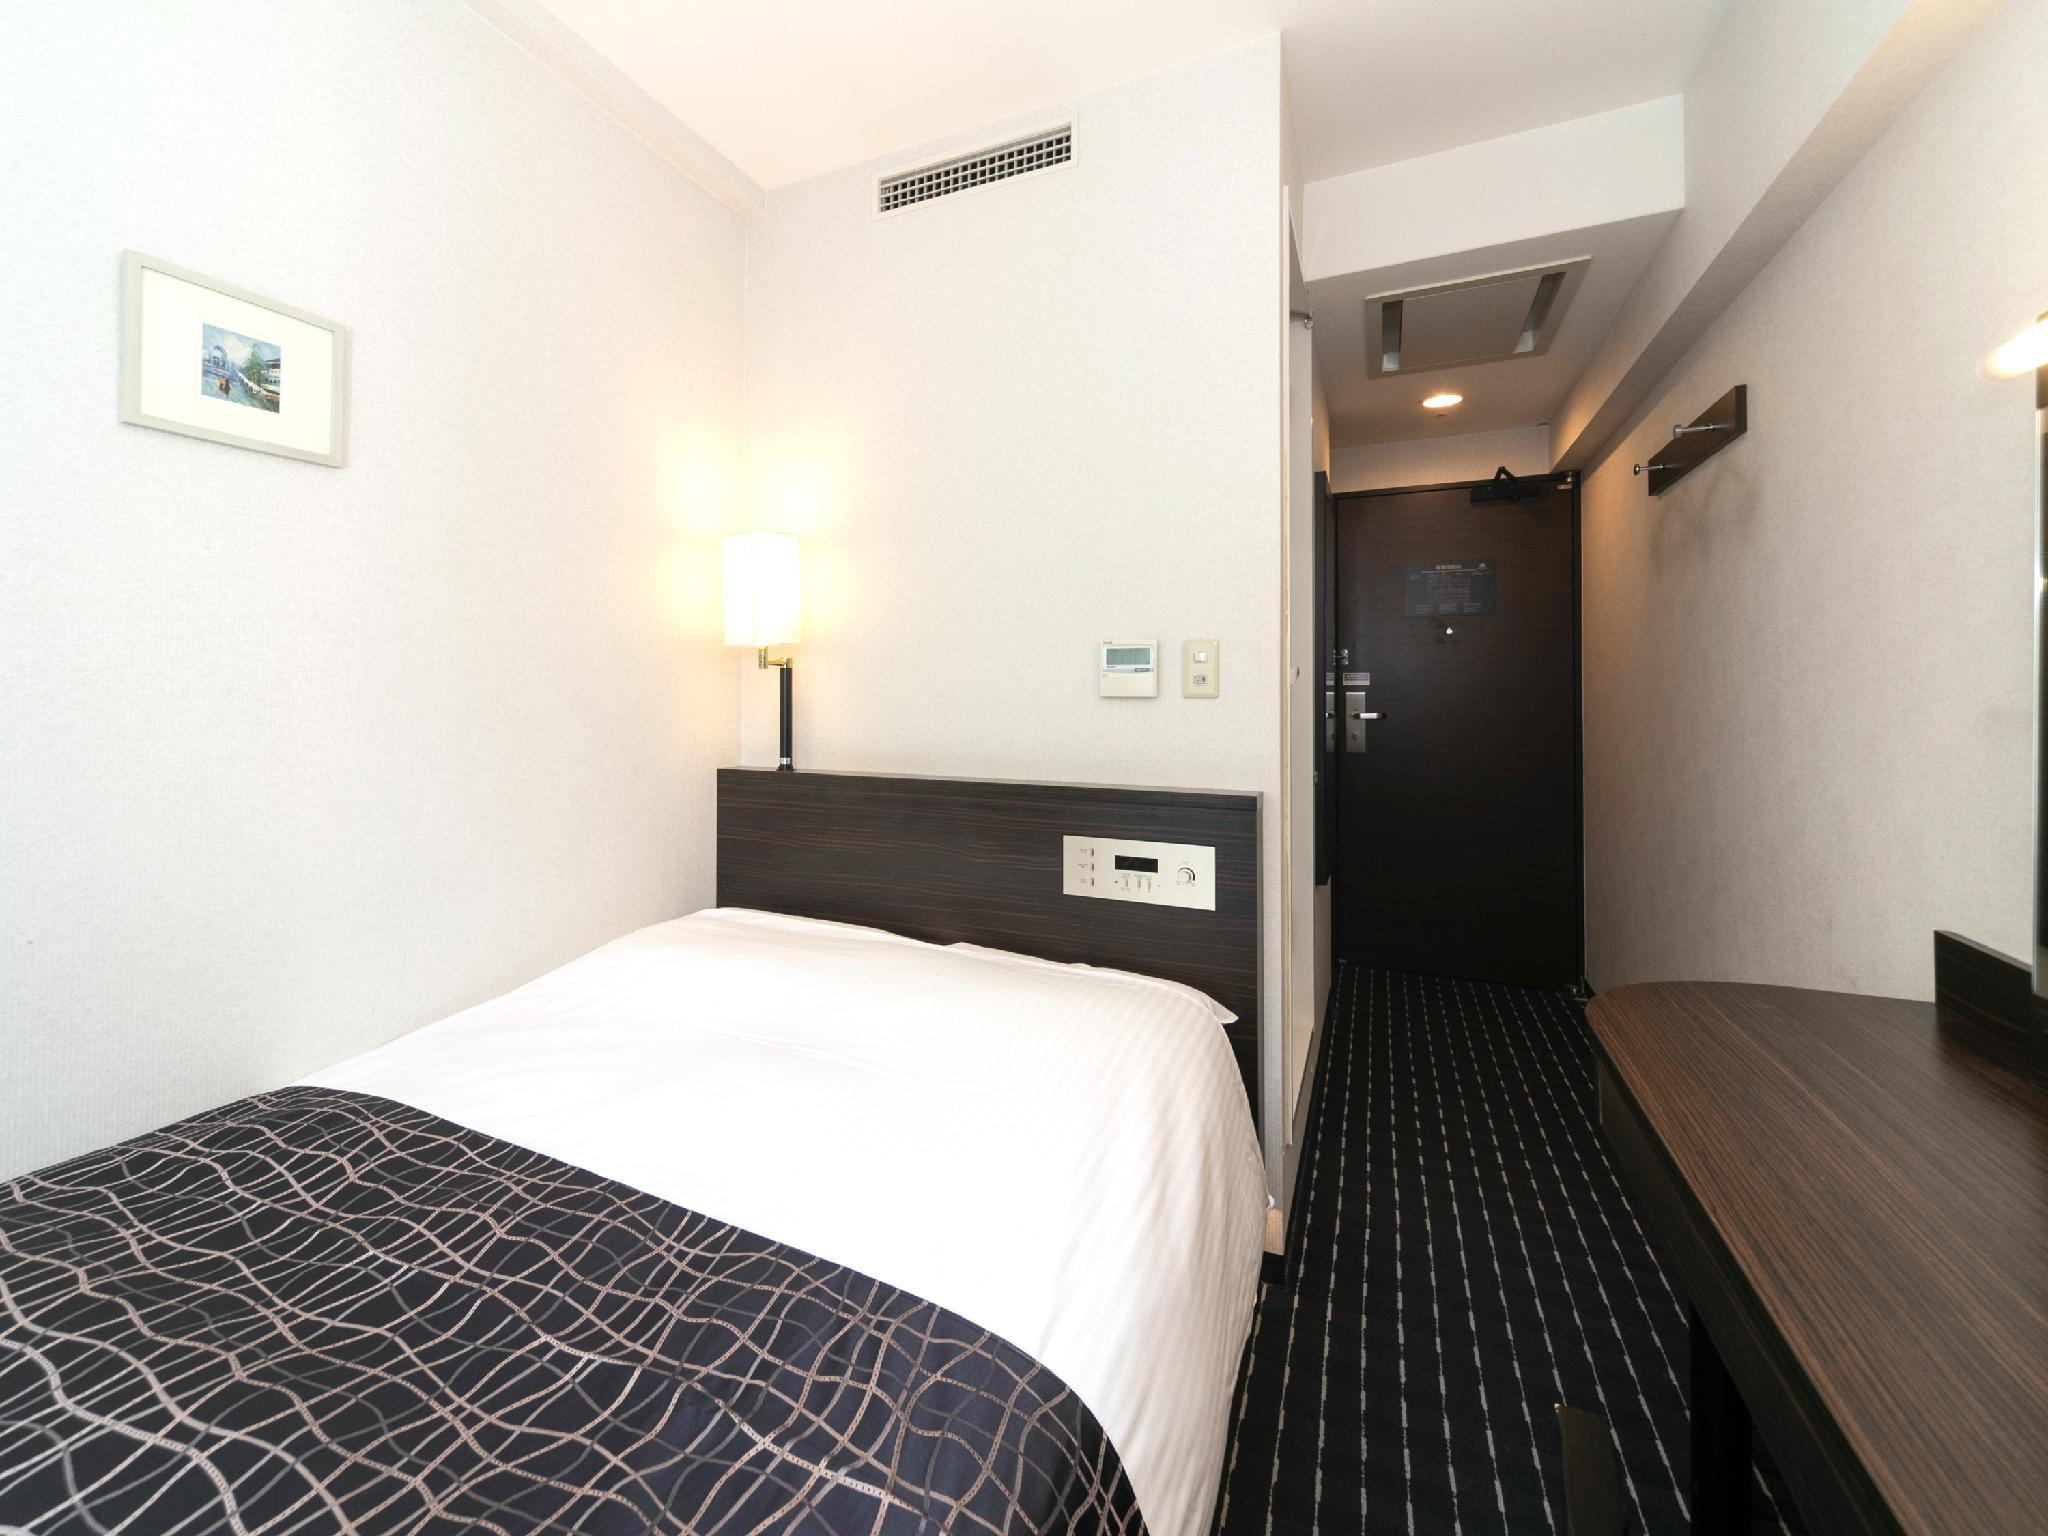 Day Use - Semi Double Room - Non Smoking 6 Hours Between 13:00 and 19:00 (6 hour use only)